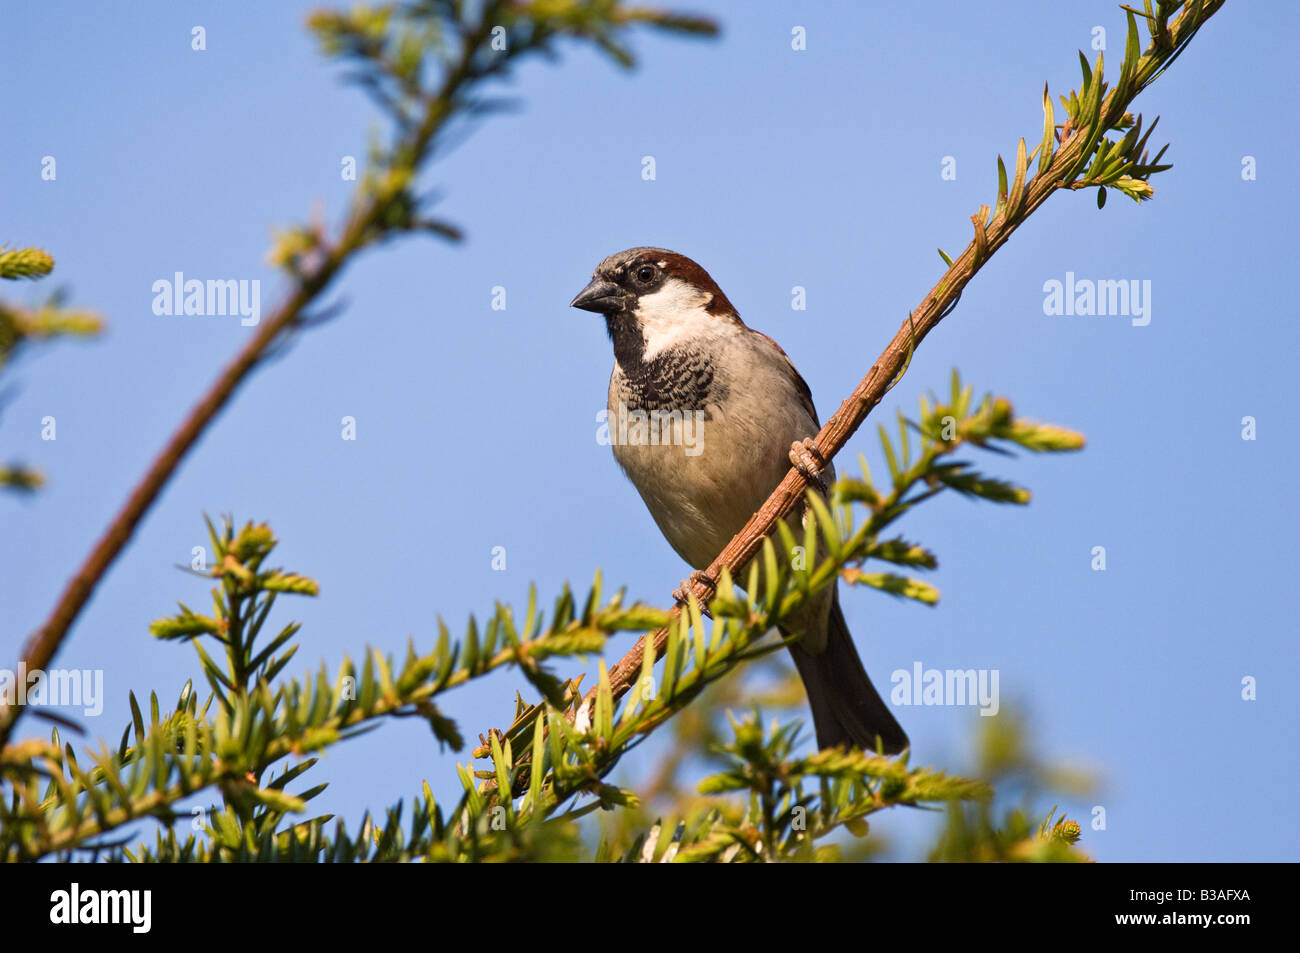 Male house sparrow perched on Yew Tree. - Stock Image